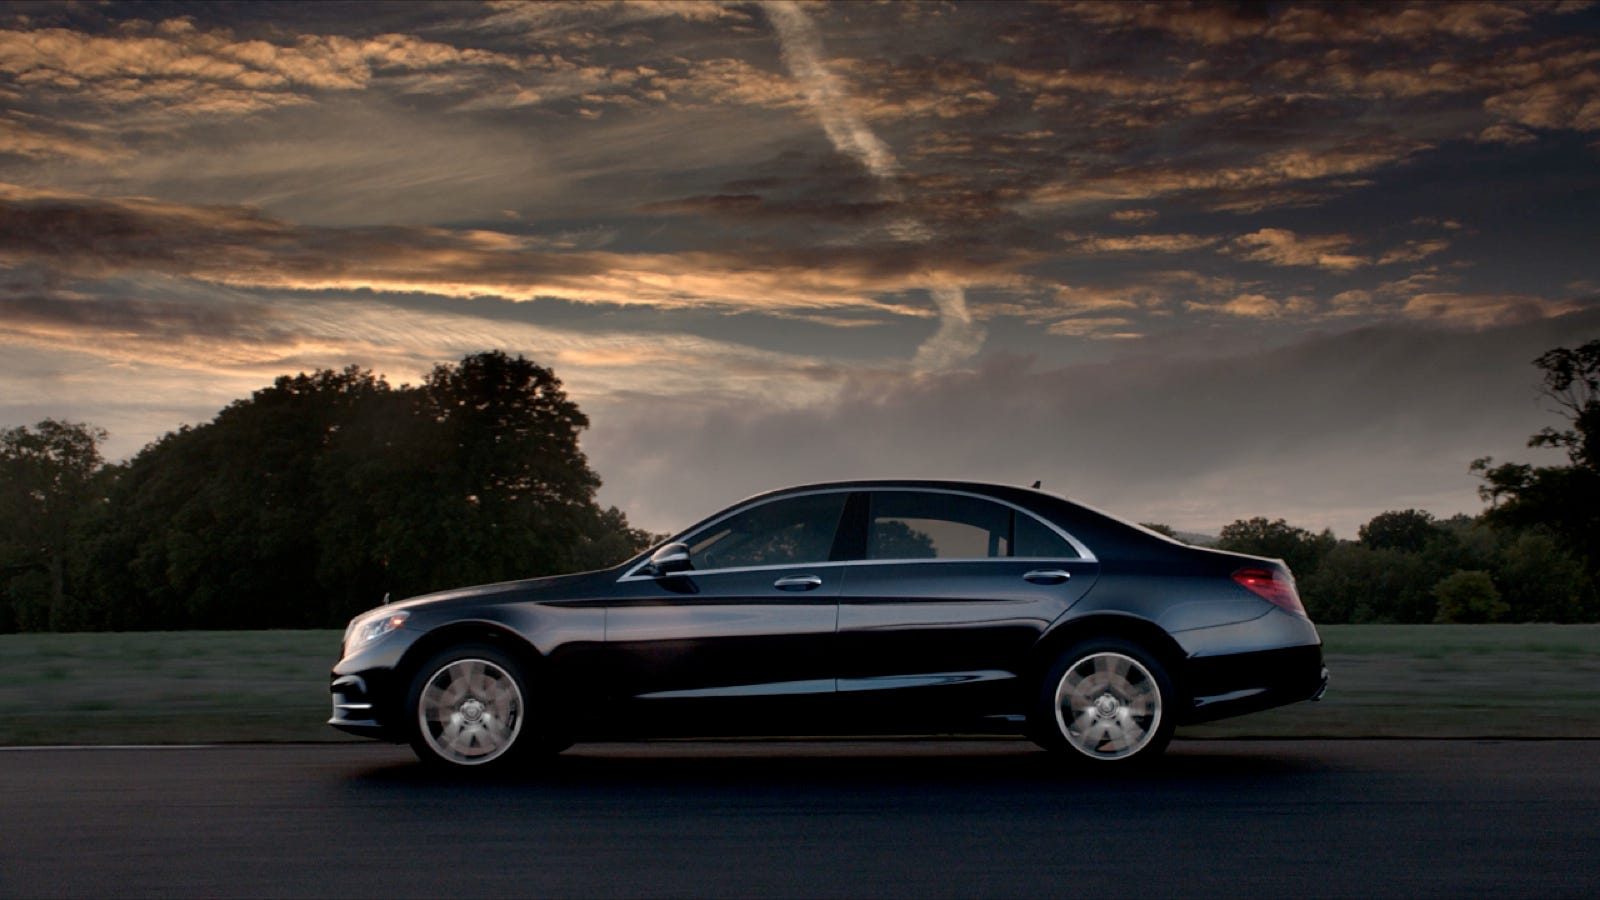 All new mercedes benz flagship 2014 s class makes its in for New mercedes benz s class 2014